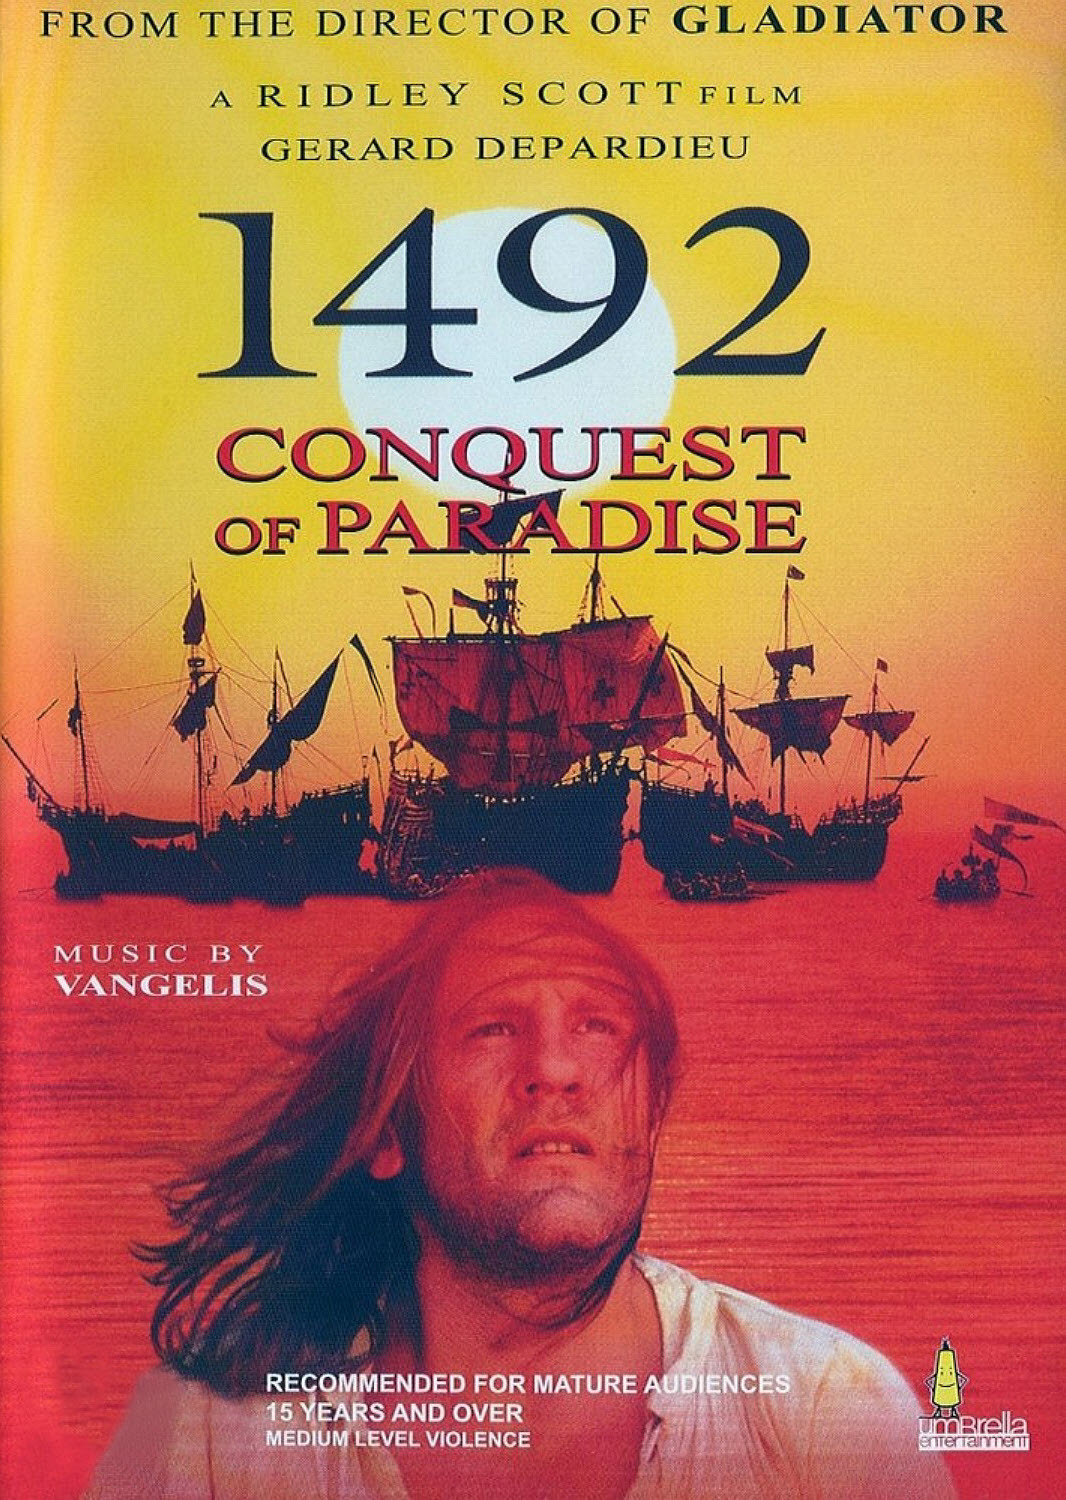 HD Quality Wallpaper   Collection: Movie, 1066x1500 1492: Conquest Of Paradise